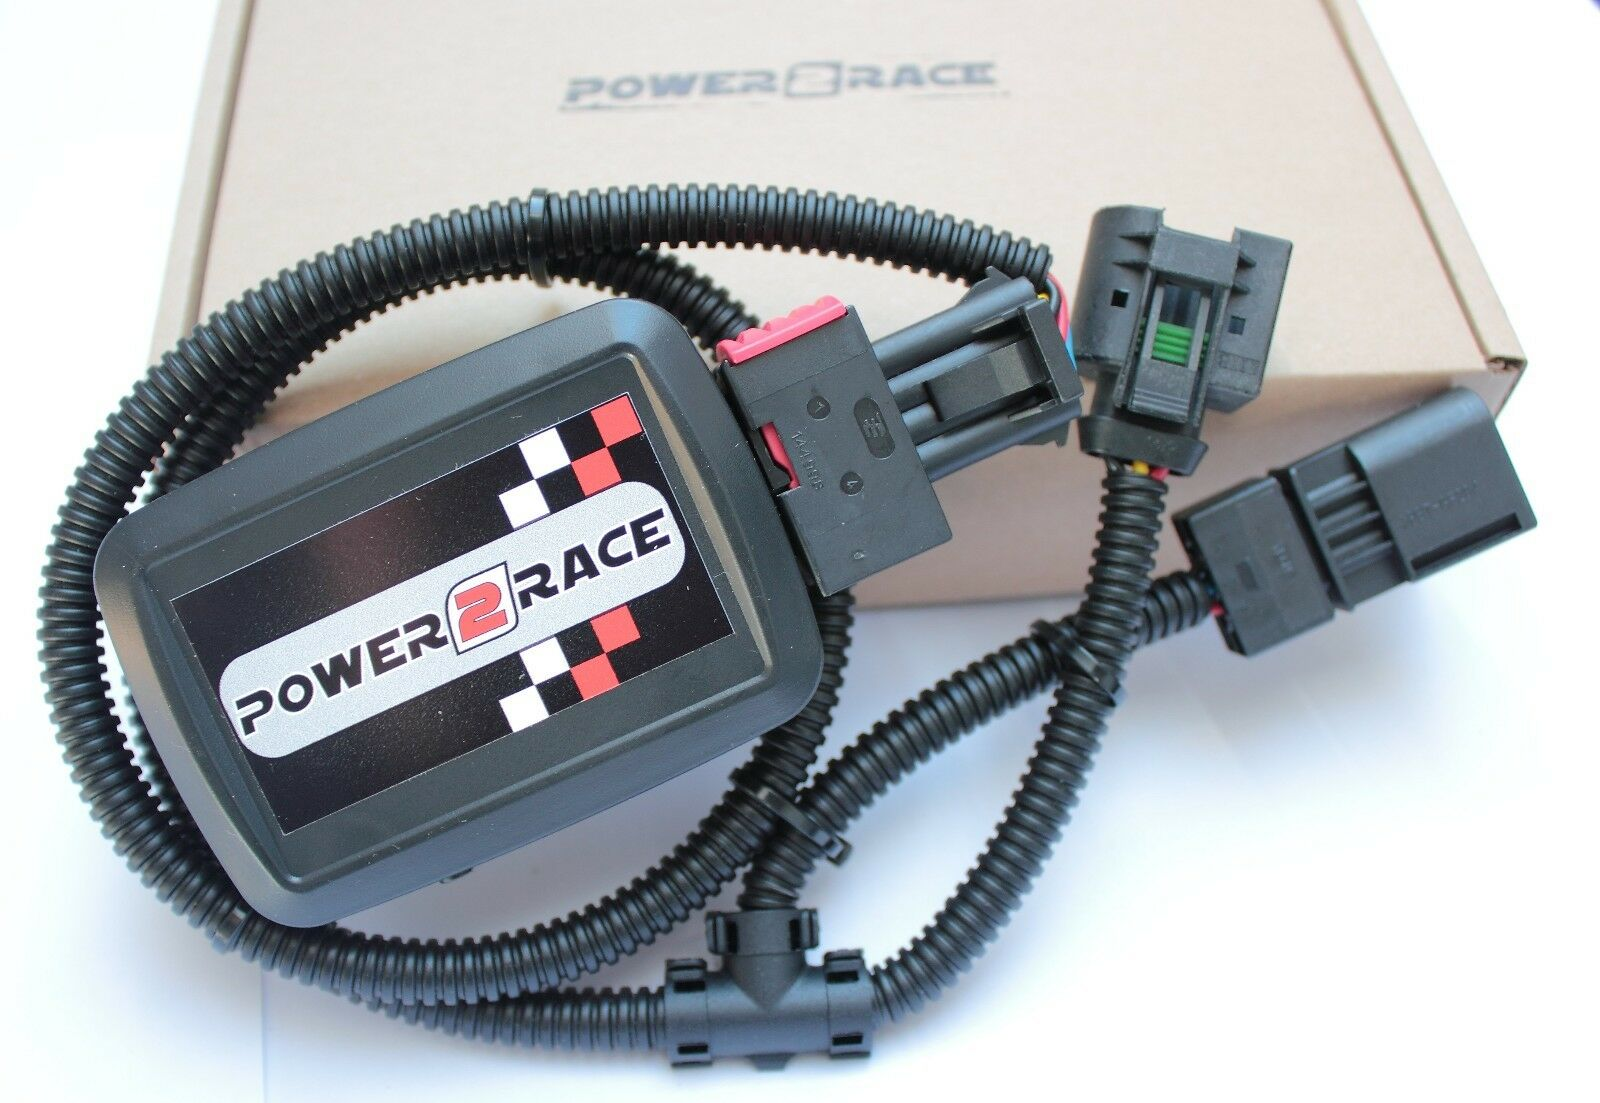 Chip Tuning BMW x5 e70 3.0d Xdrive 30d 173 kw 235ps RACE POWER tuning box